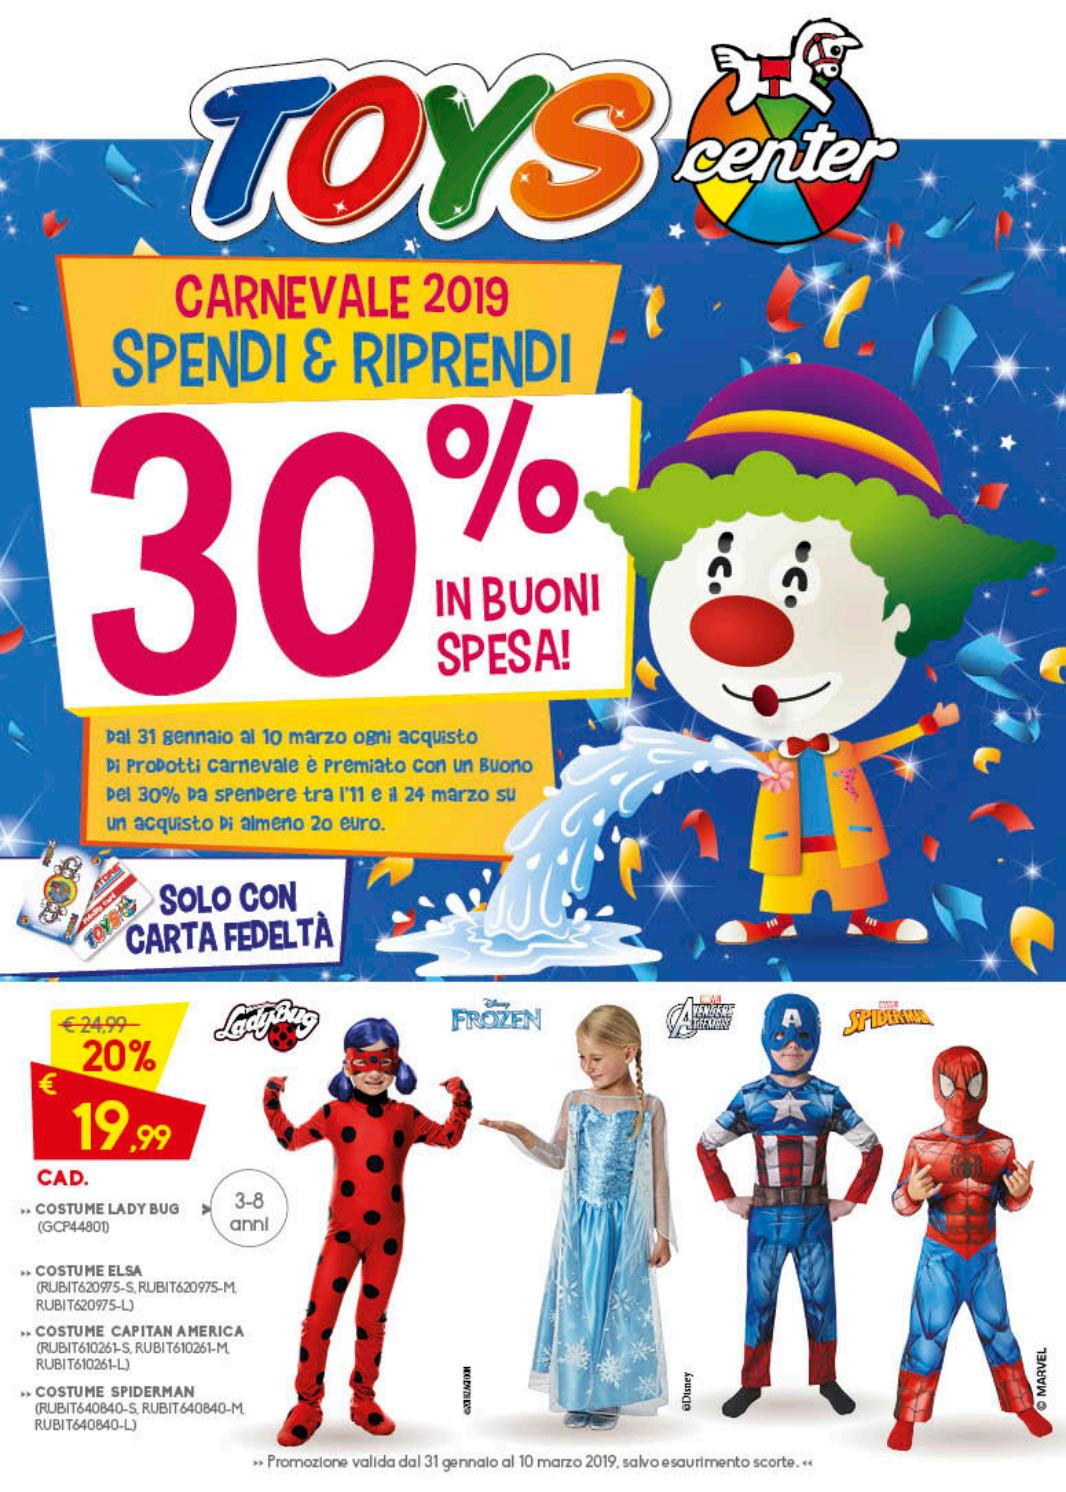 vendite all'ingrosso San Francisco piuttosto economico Carnevale Toys Center 2019 by Toyscenter - issuu